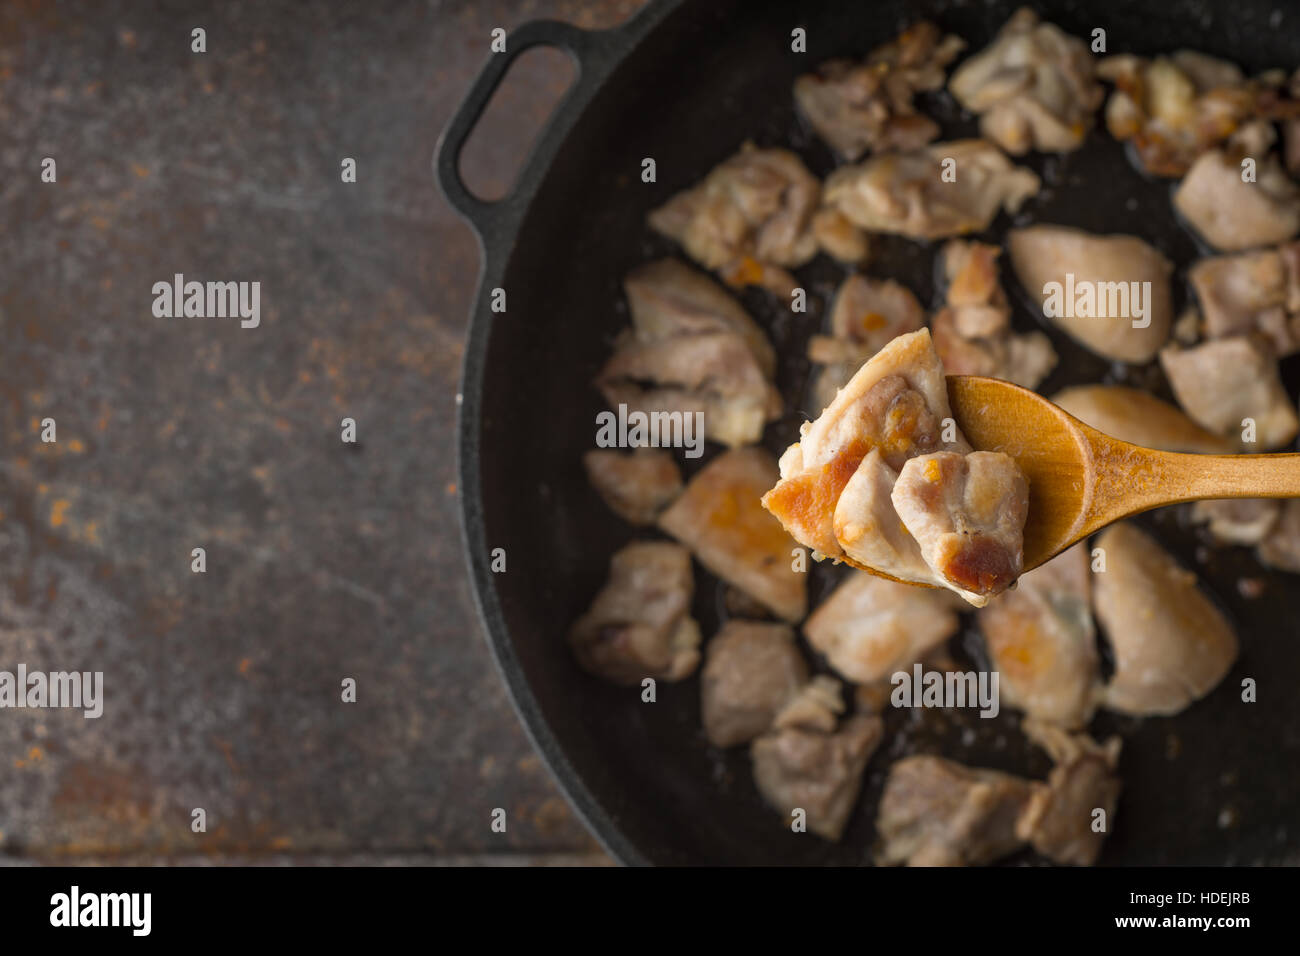 Fried chicken in the wooden spoon with blurred pan - Stock Image